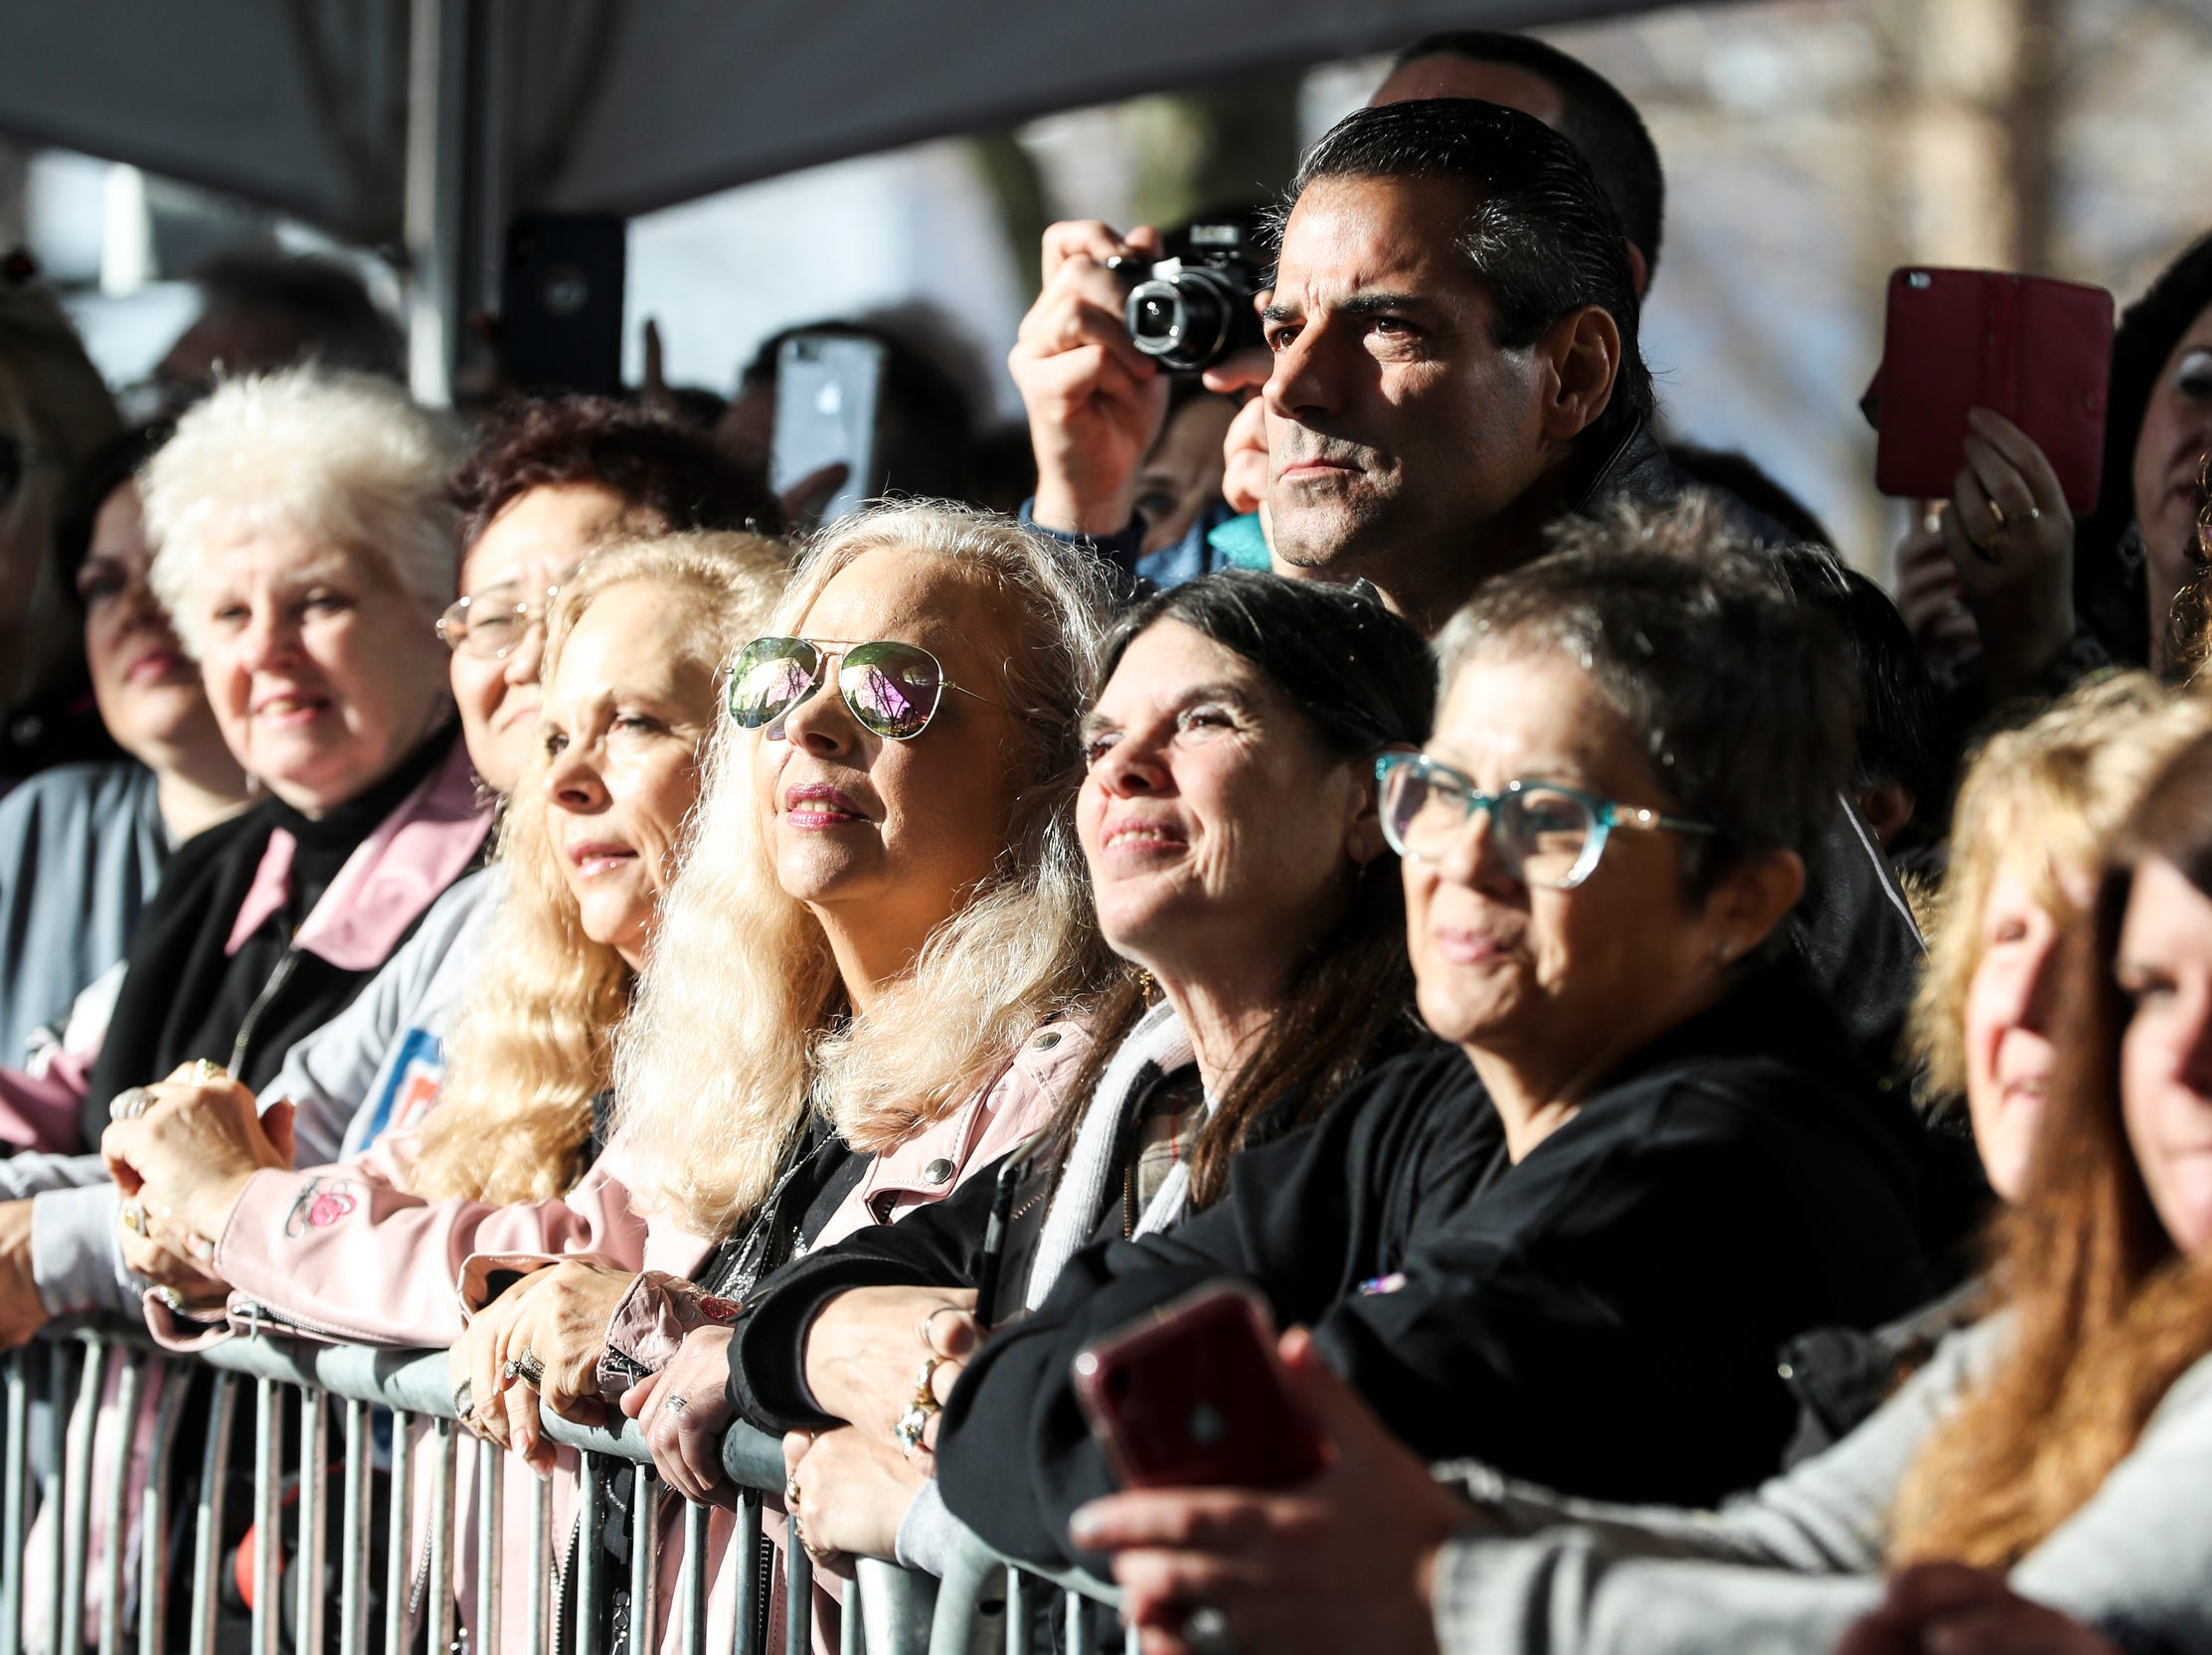 January 08 2019 - Fans and officials gathered on Graceland's north lawn on Tuesday to celebrate during the Elvis Birthday Proclamation Ceremony. Tuesday would have been Elvis' 84th birthday.